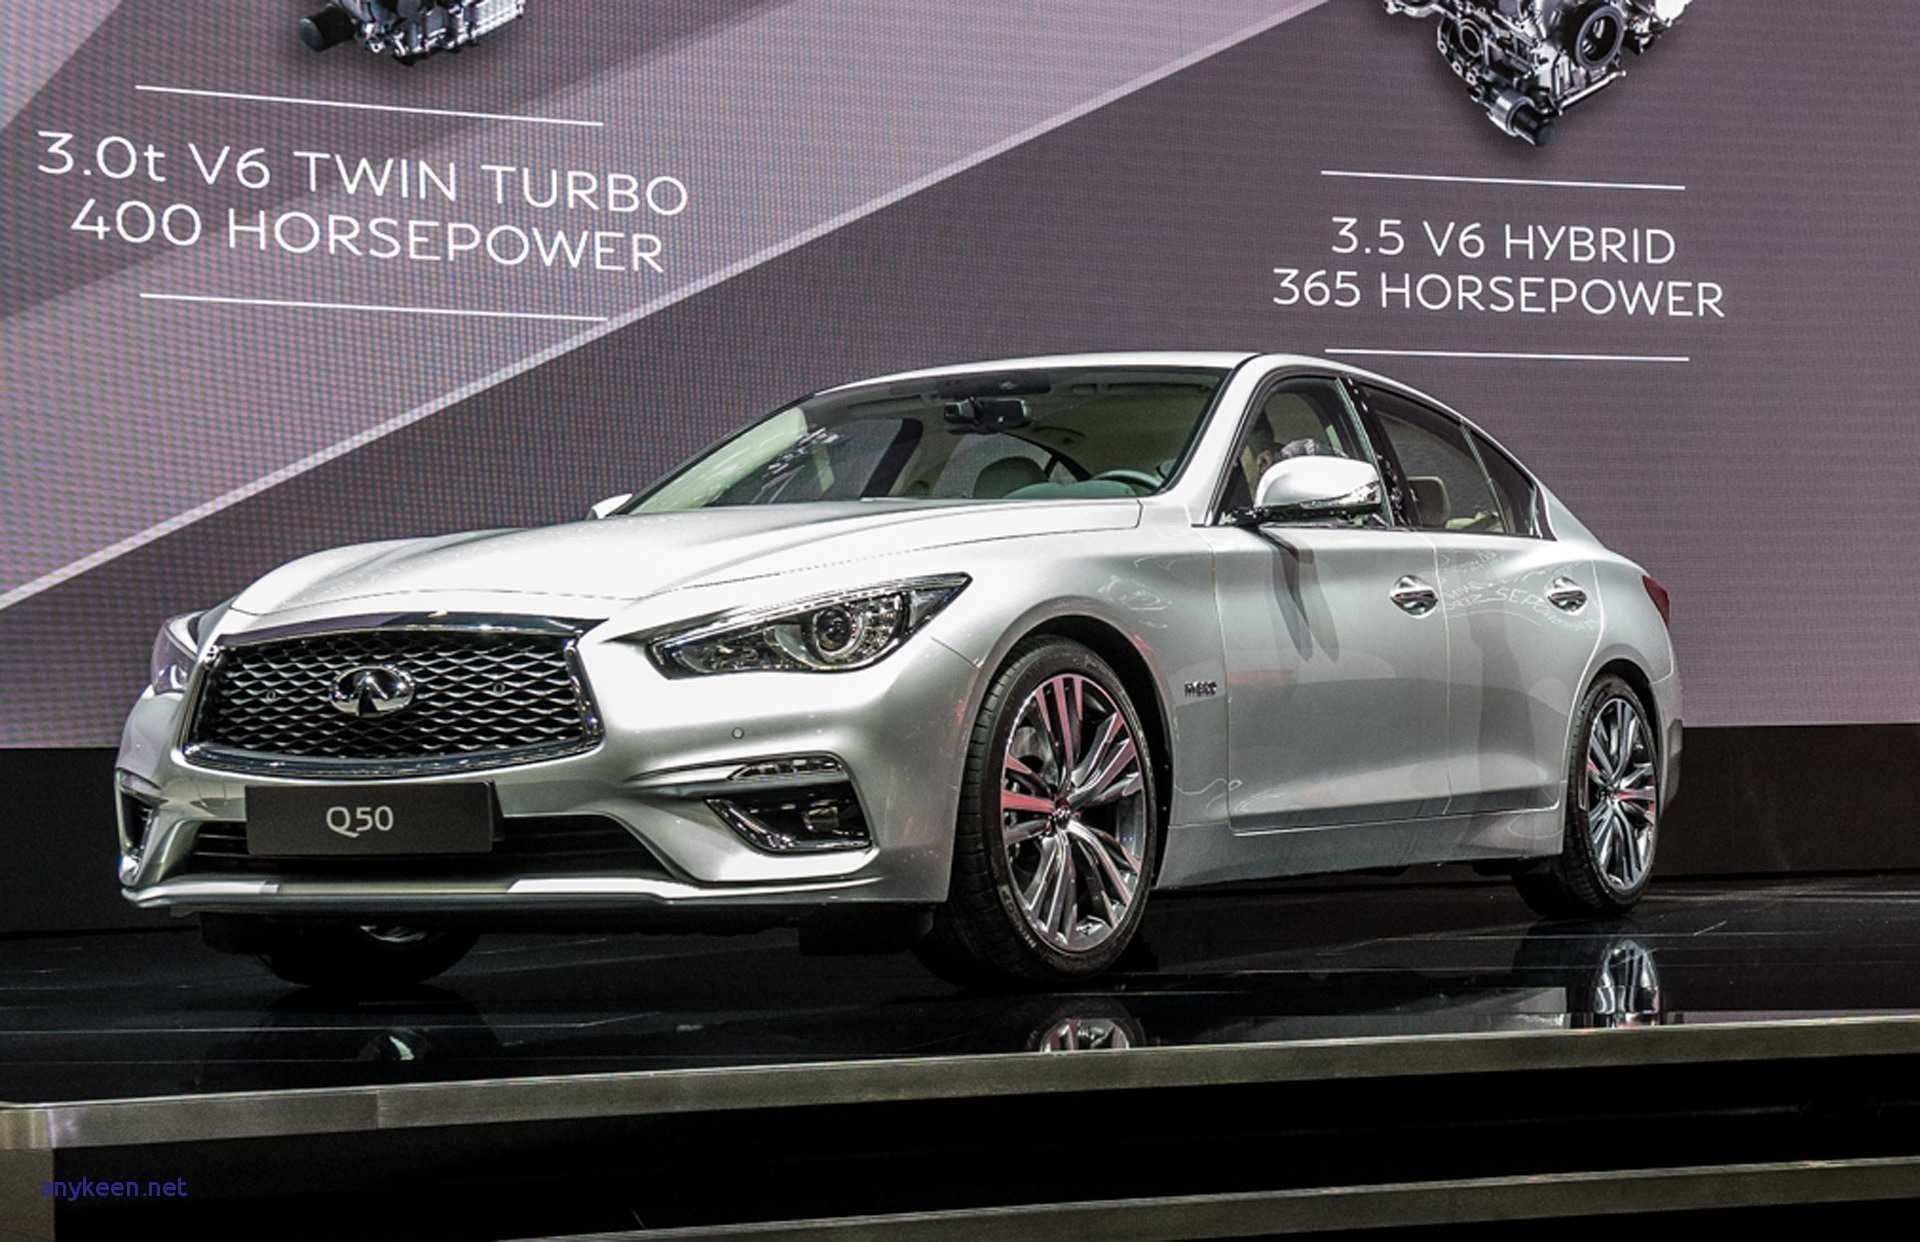 30 Gallery of 2020 Infiniti Qx50 Horsepower Price with 2020 Infiniti Qx50 Horsepower